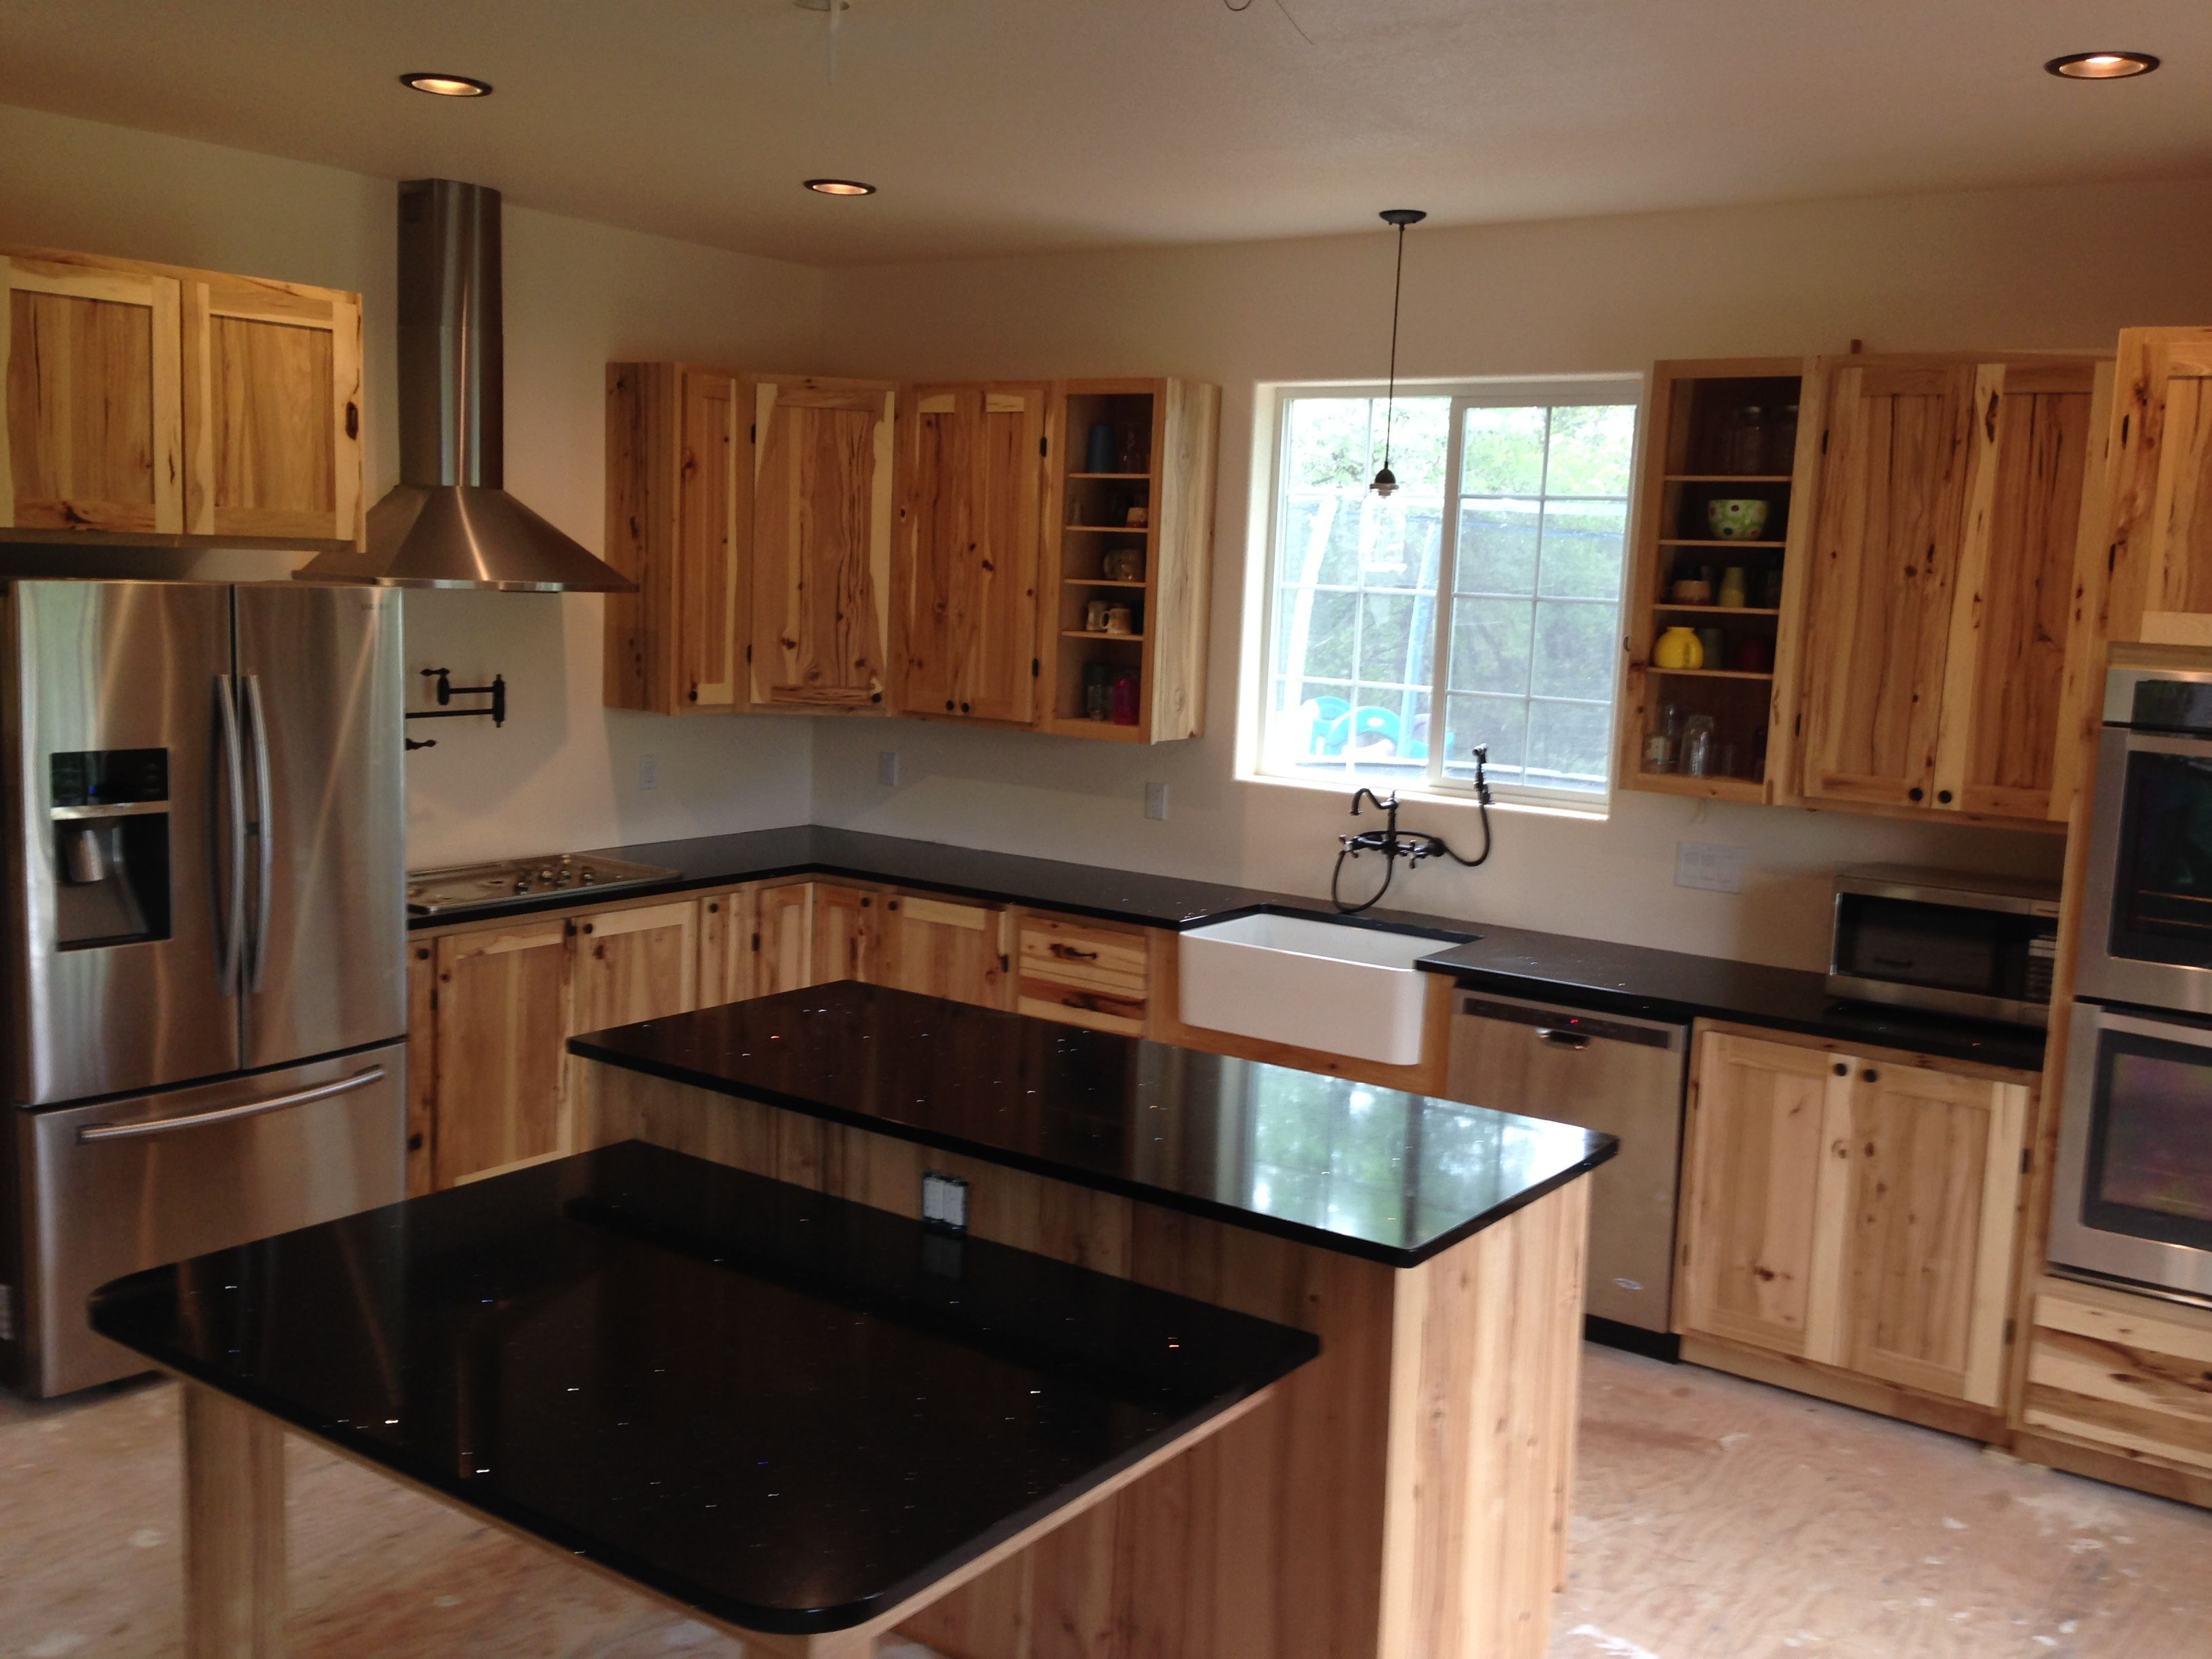 rustic black kitchen cabinets modern island with seating stainless appliances and farmhouse